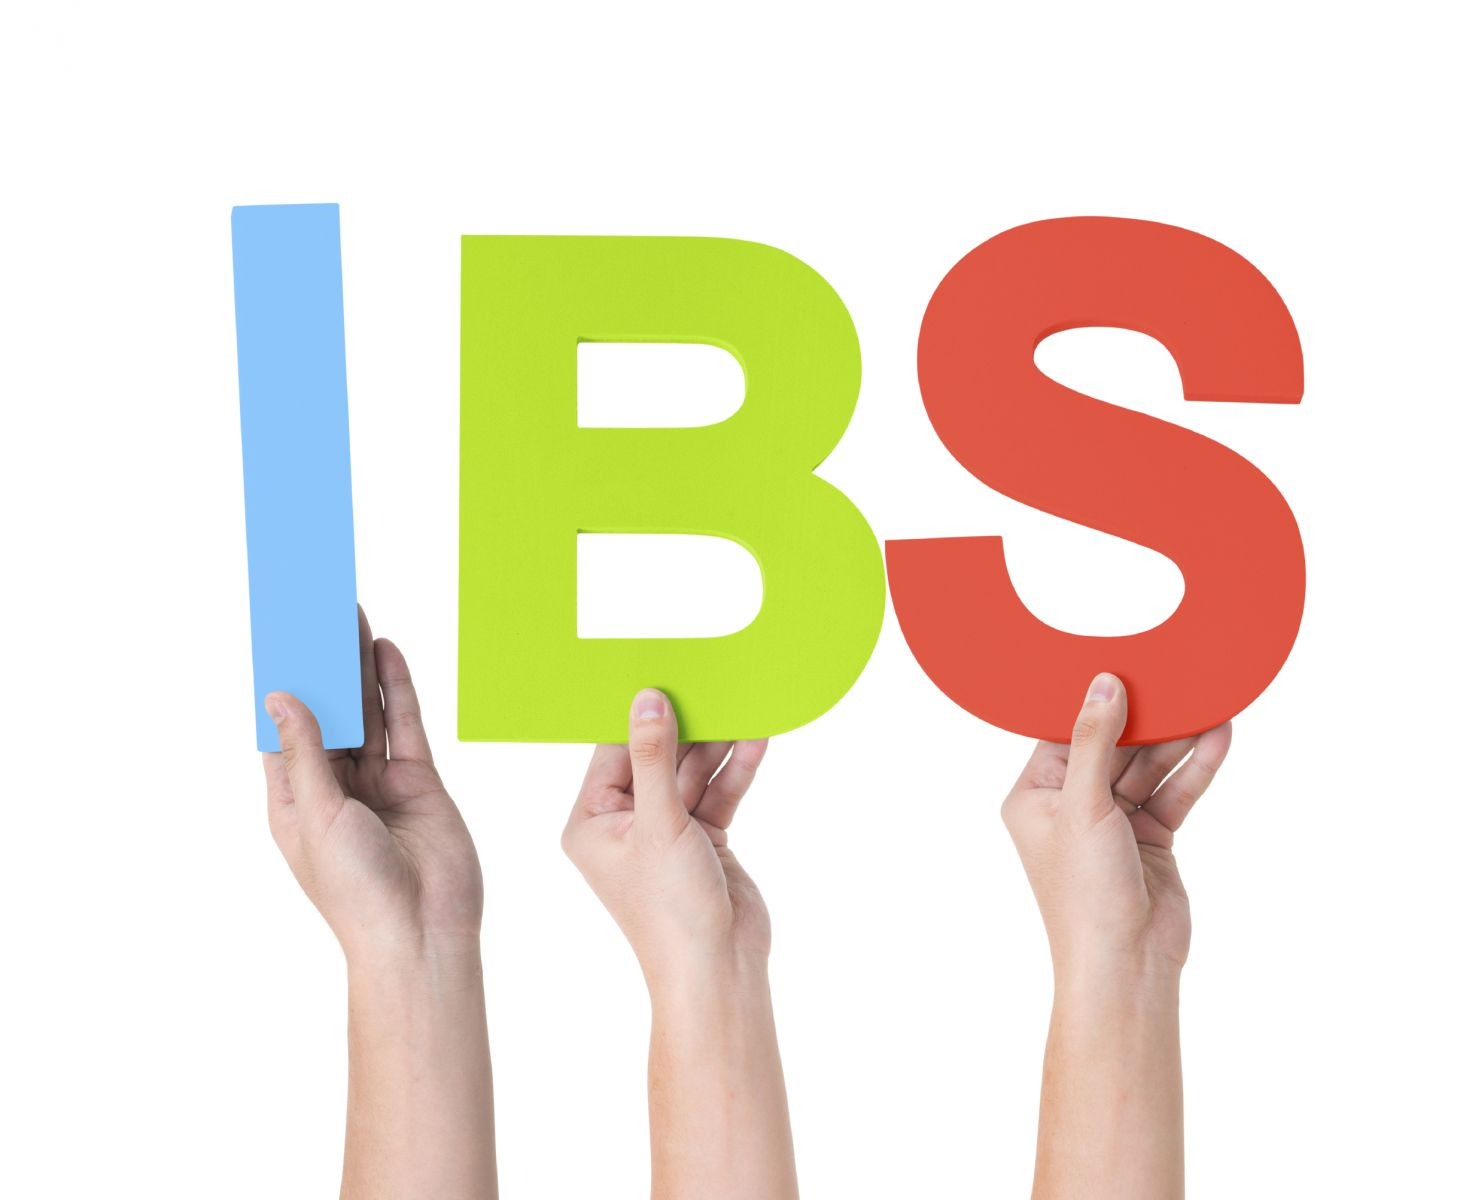 Enhance Your Living With Irritable Bowel Syndrome Through Effective Symptom Management